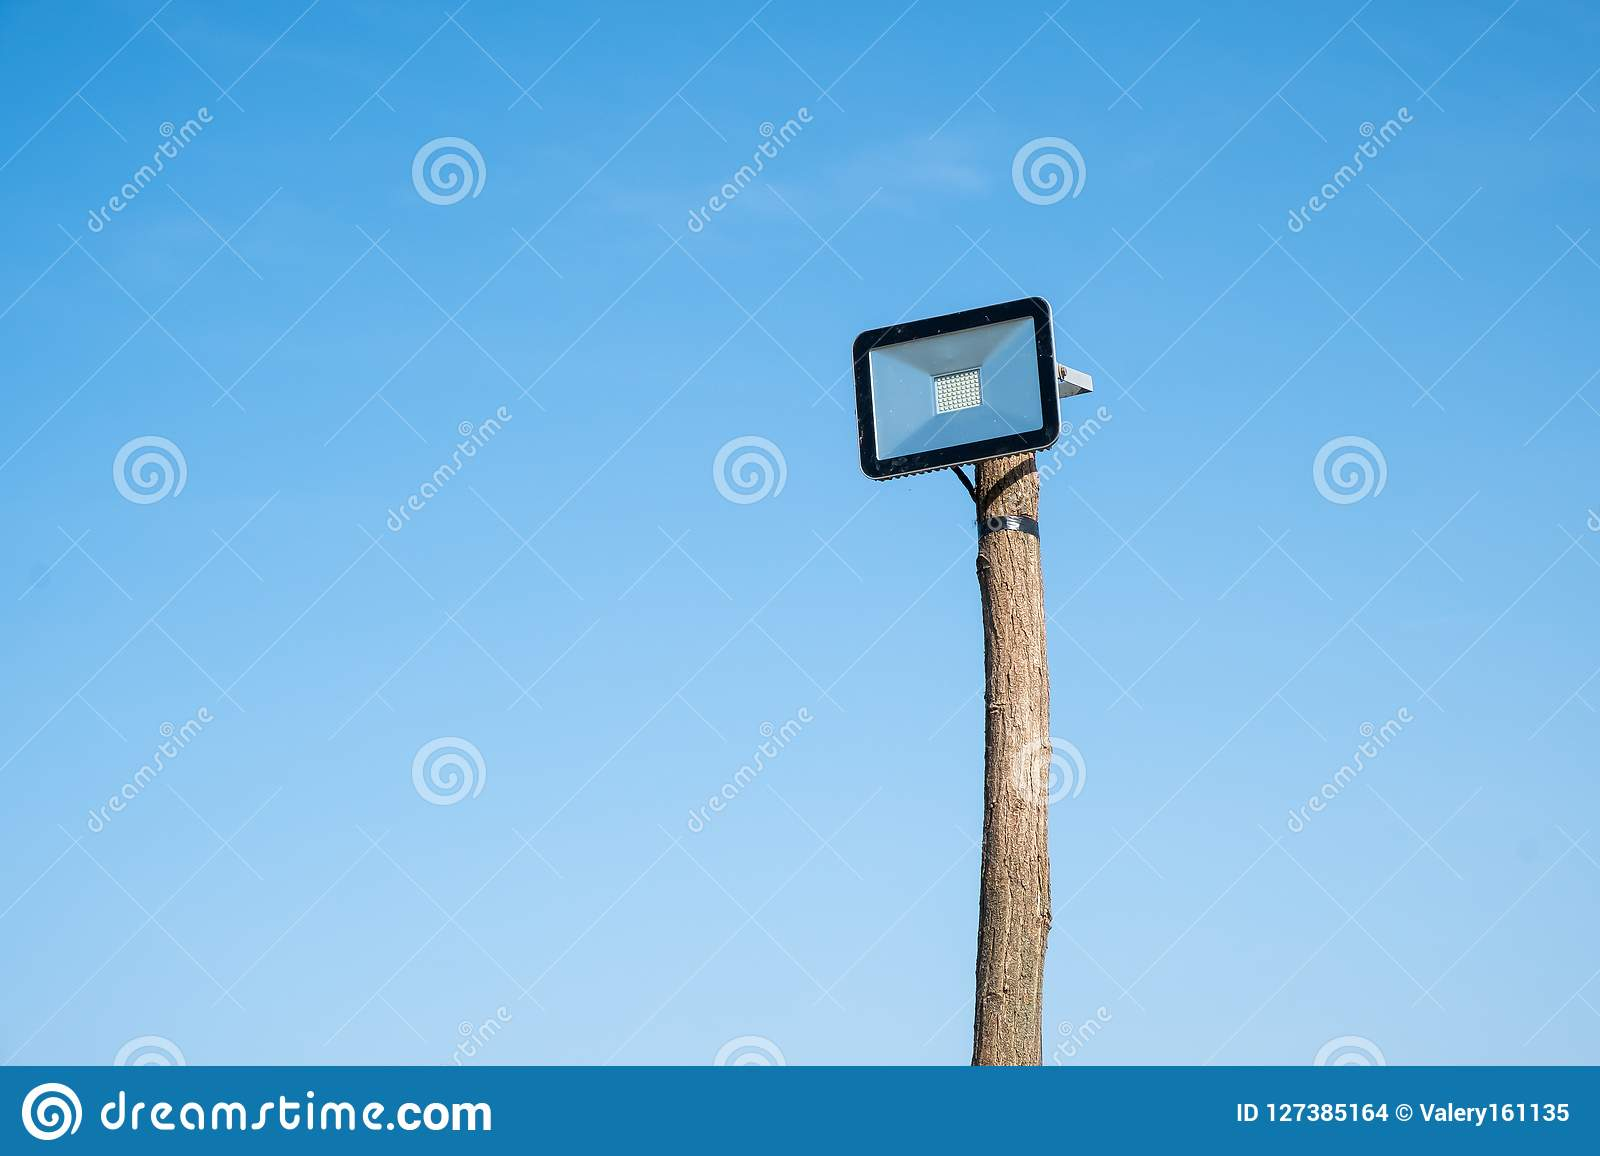 Led street lamp mounted on a wooden tree trunk